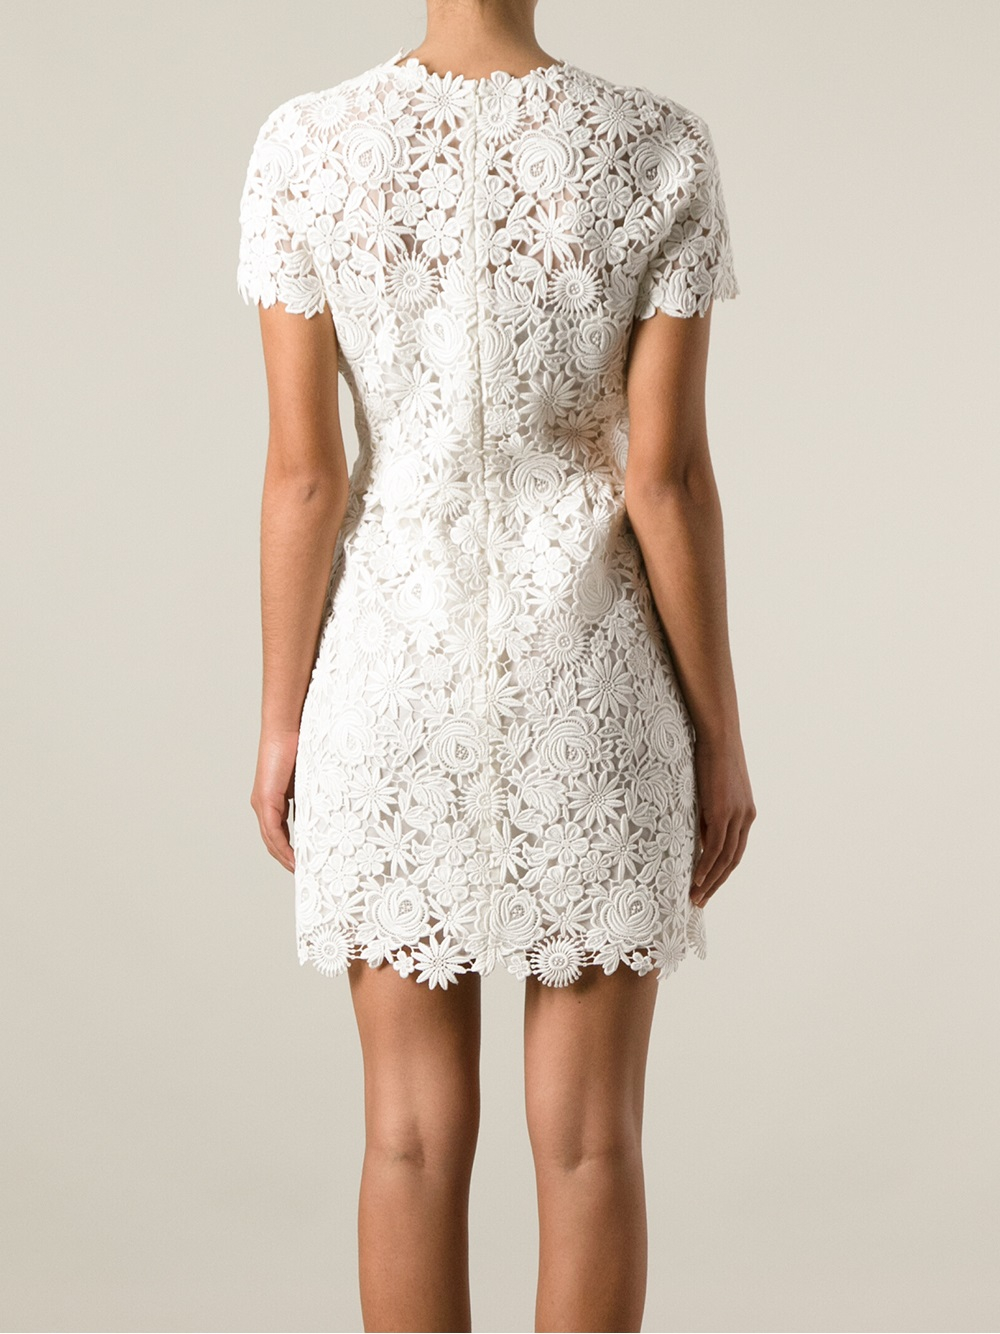 97dd25aa8f Gallery. Previously sold at  Farfetch · Women s White Cocktail Dresses